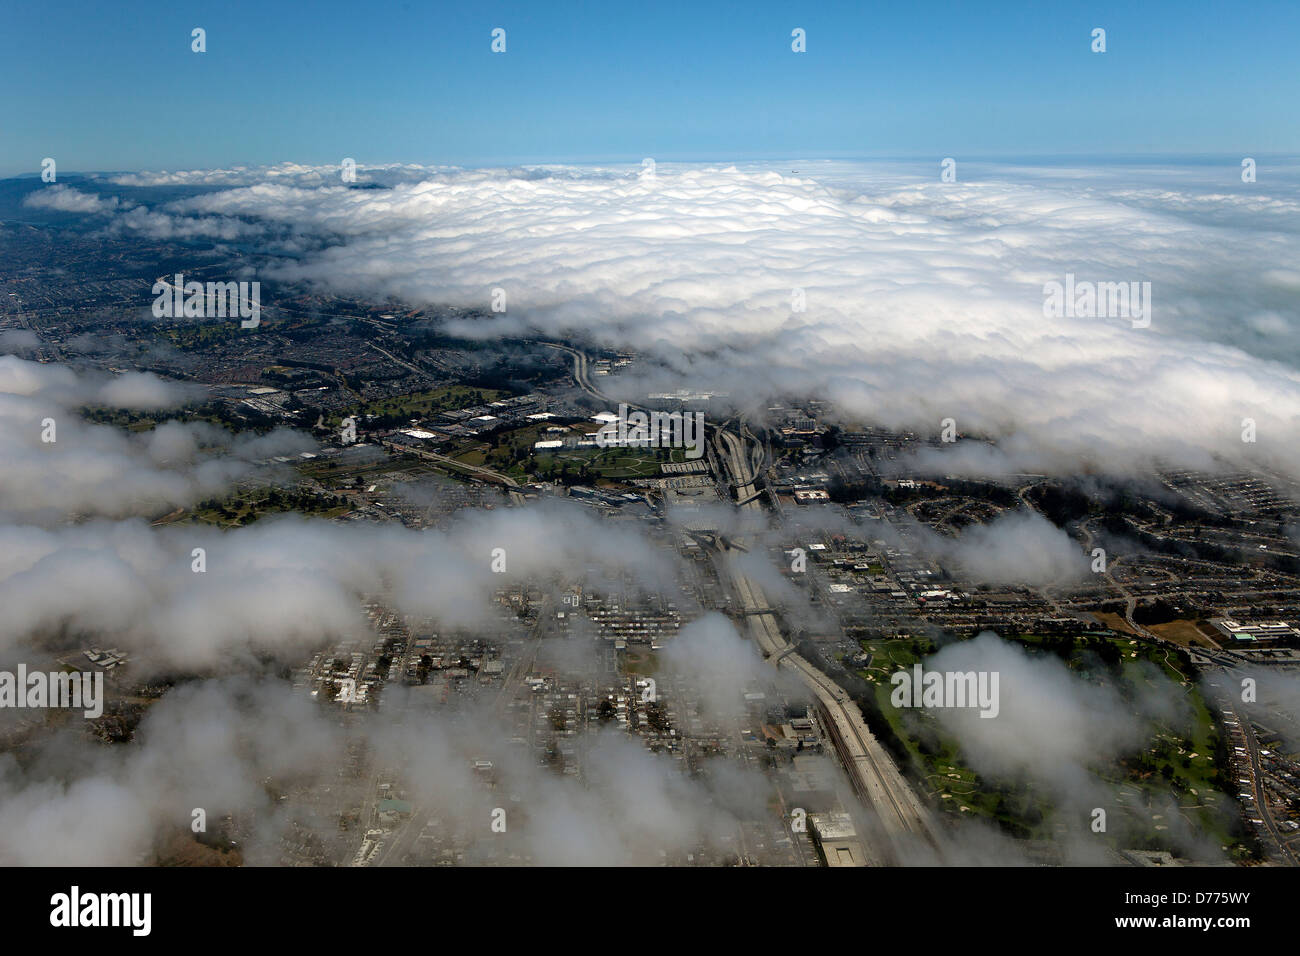 aerial photograph fog Daly City, San Mateo County, California - Stock Image